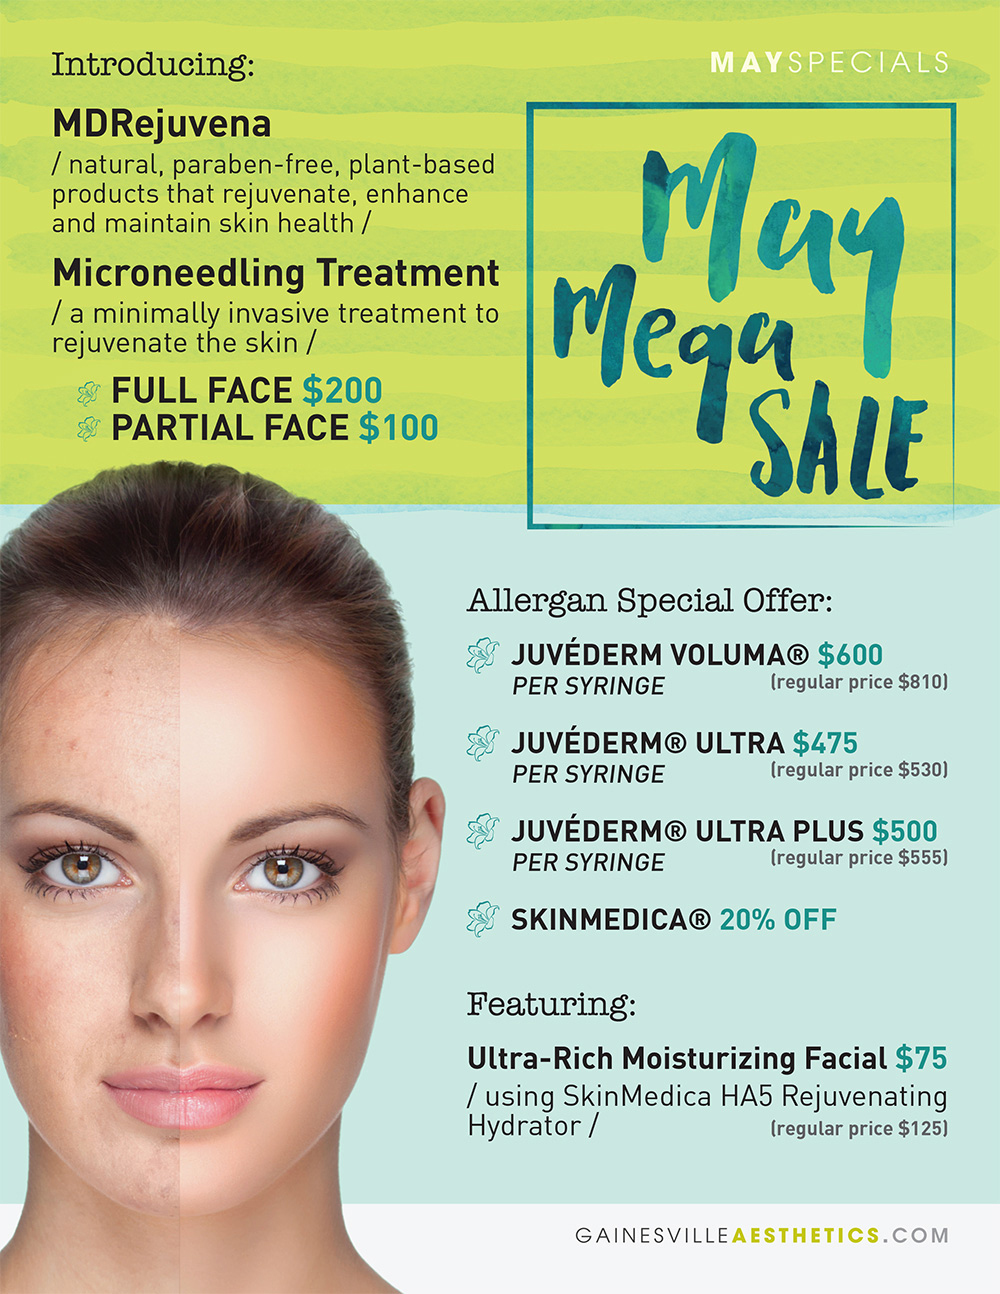 Accent Aesthetics in Gainesville FL Med Spa May 2016 Specials